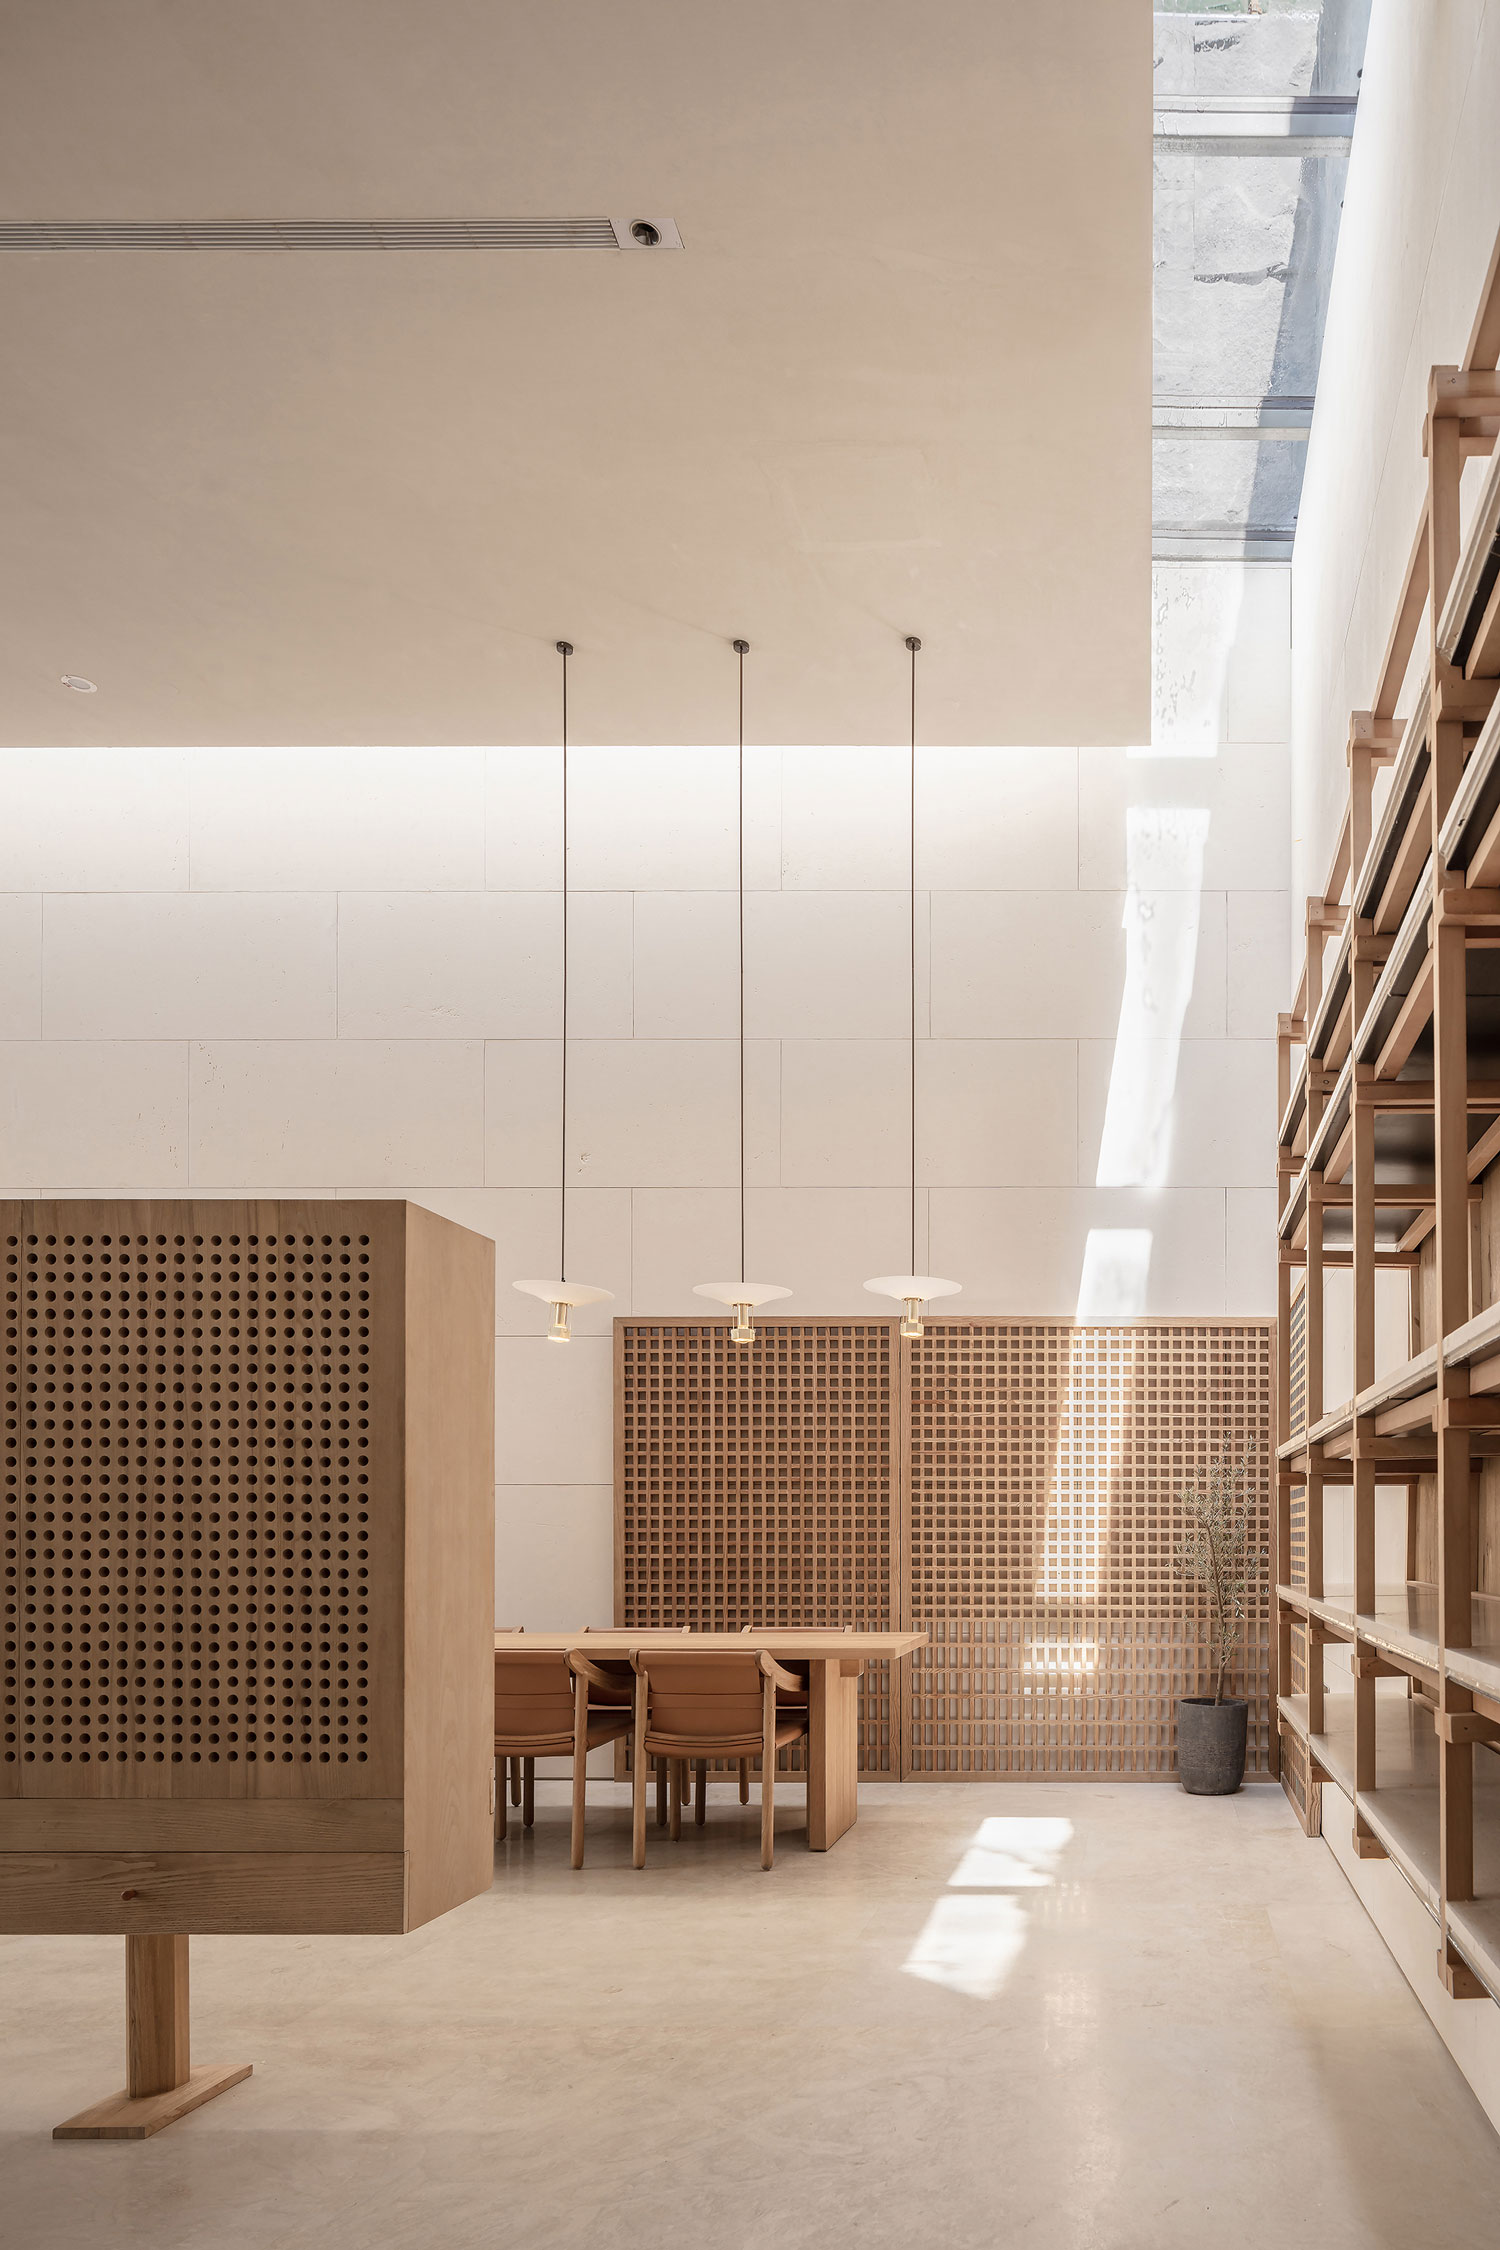 TEA Community Center in Xiamen, China by Waterfrom Design   Yellowtrace